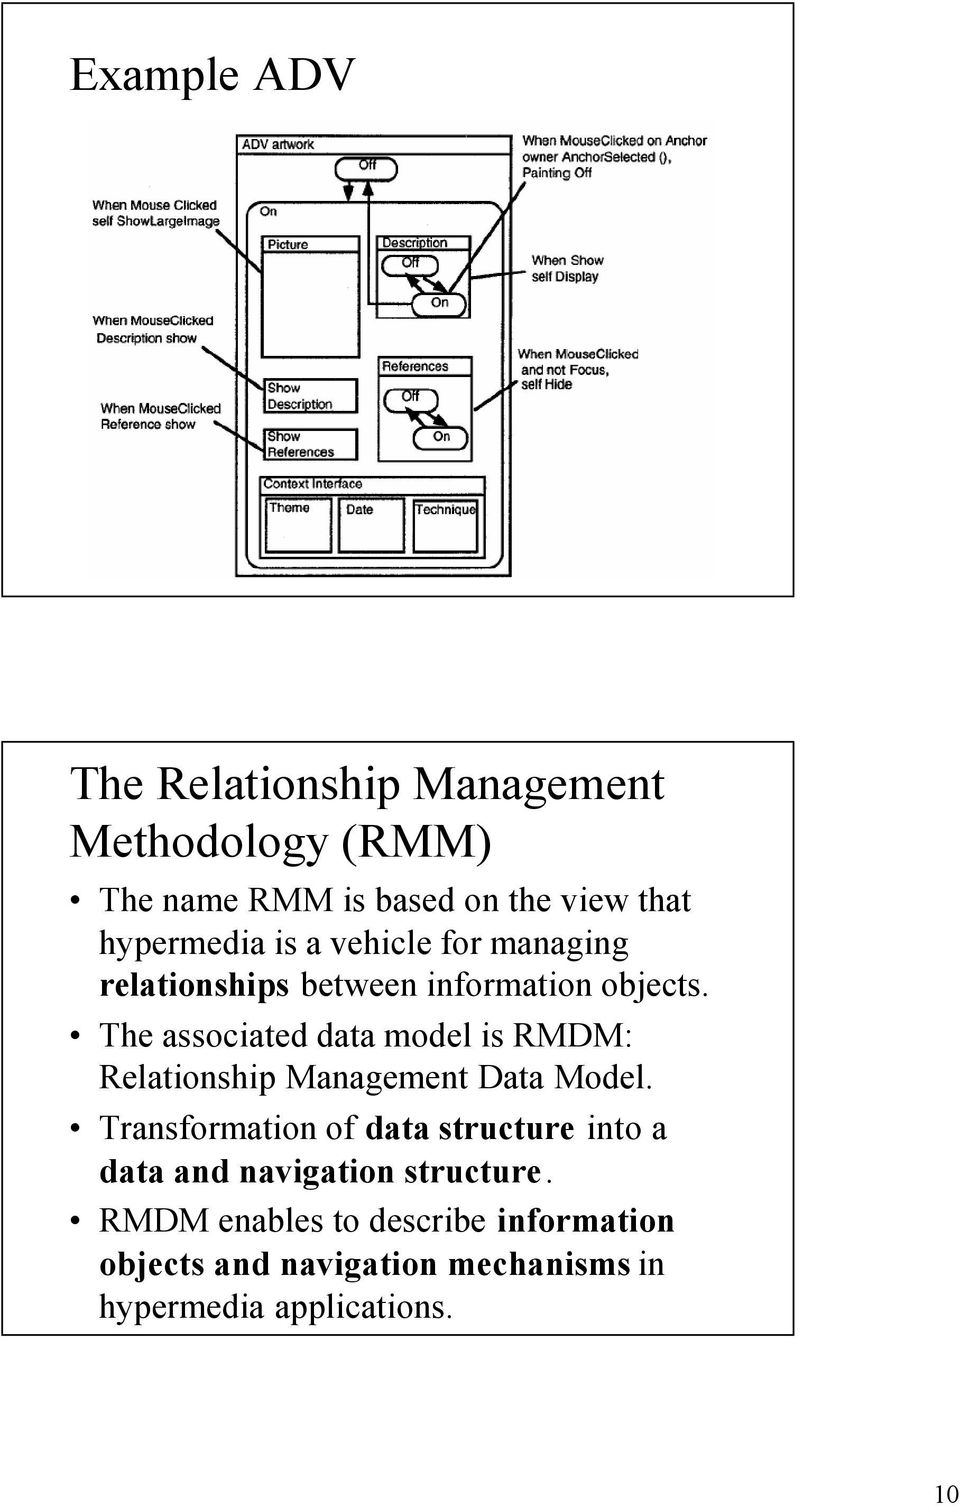 The associated data model is RMDM: Relationship Management Data Model.